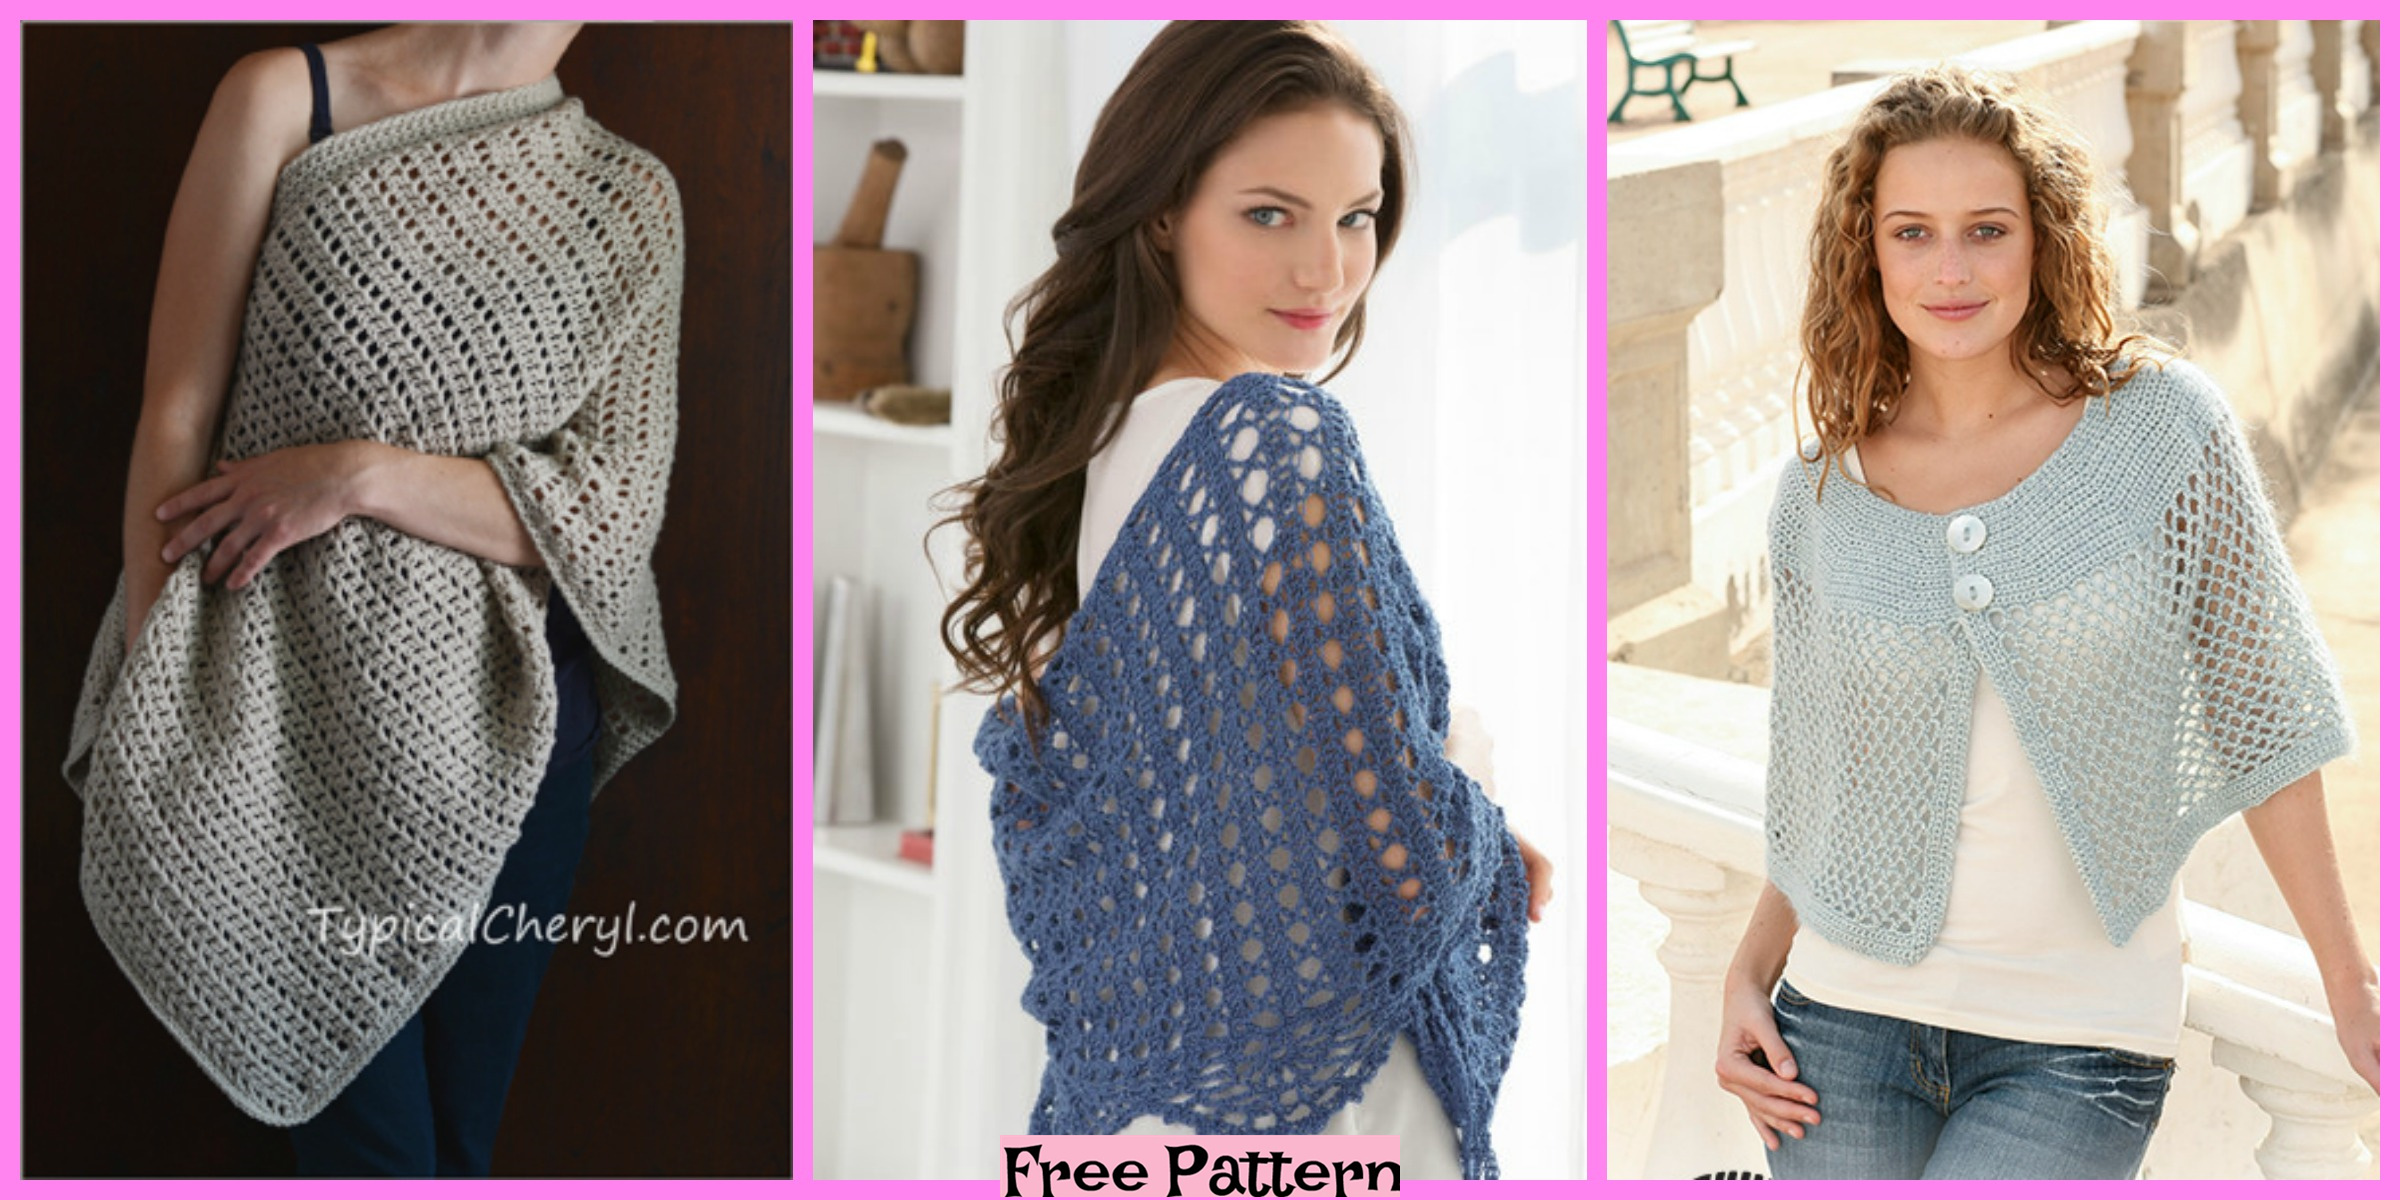 6 Crochet Shoulder Wrap Free Patterns